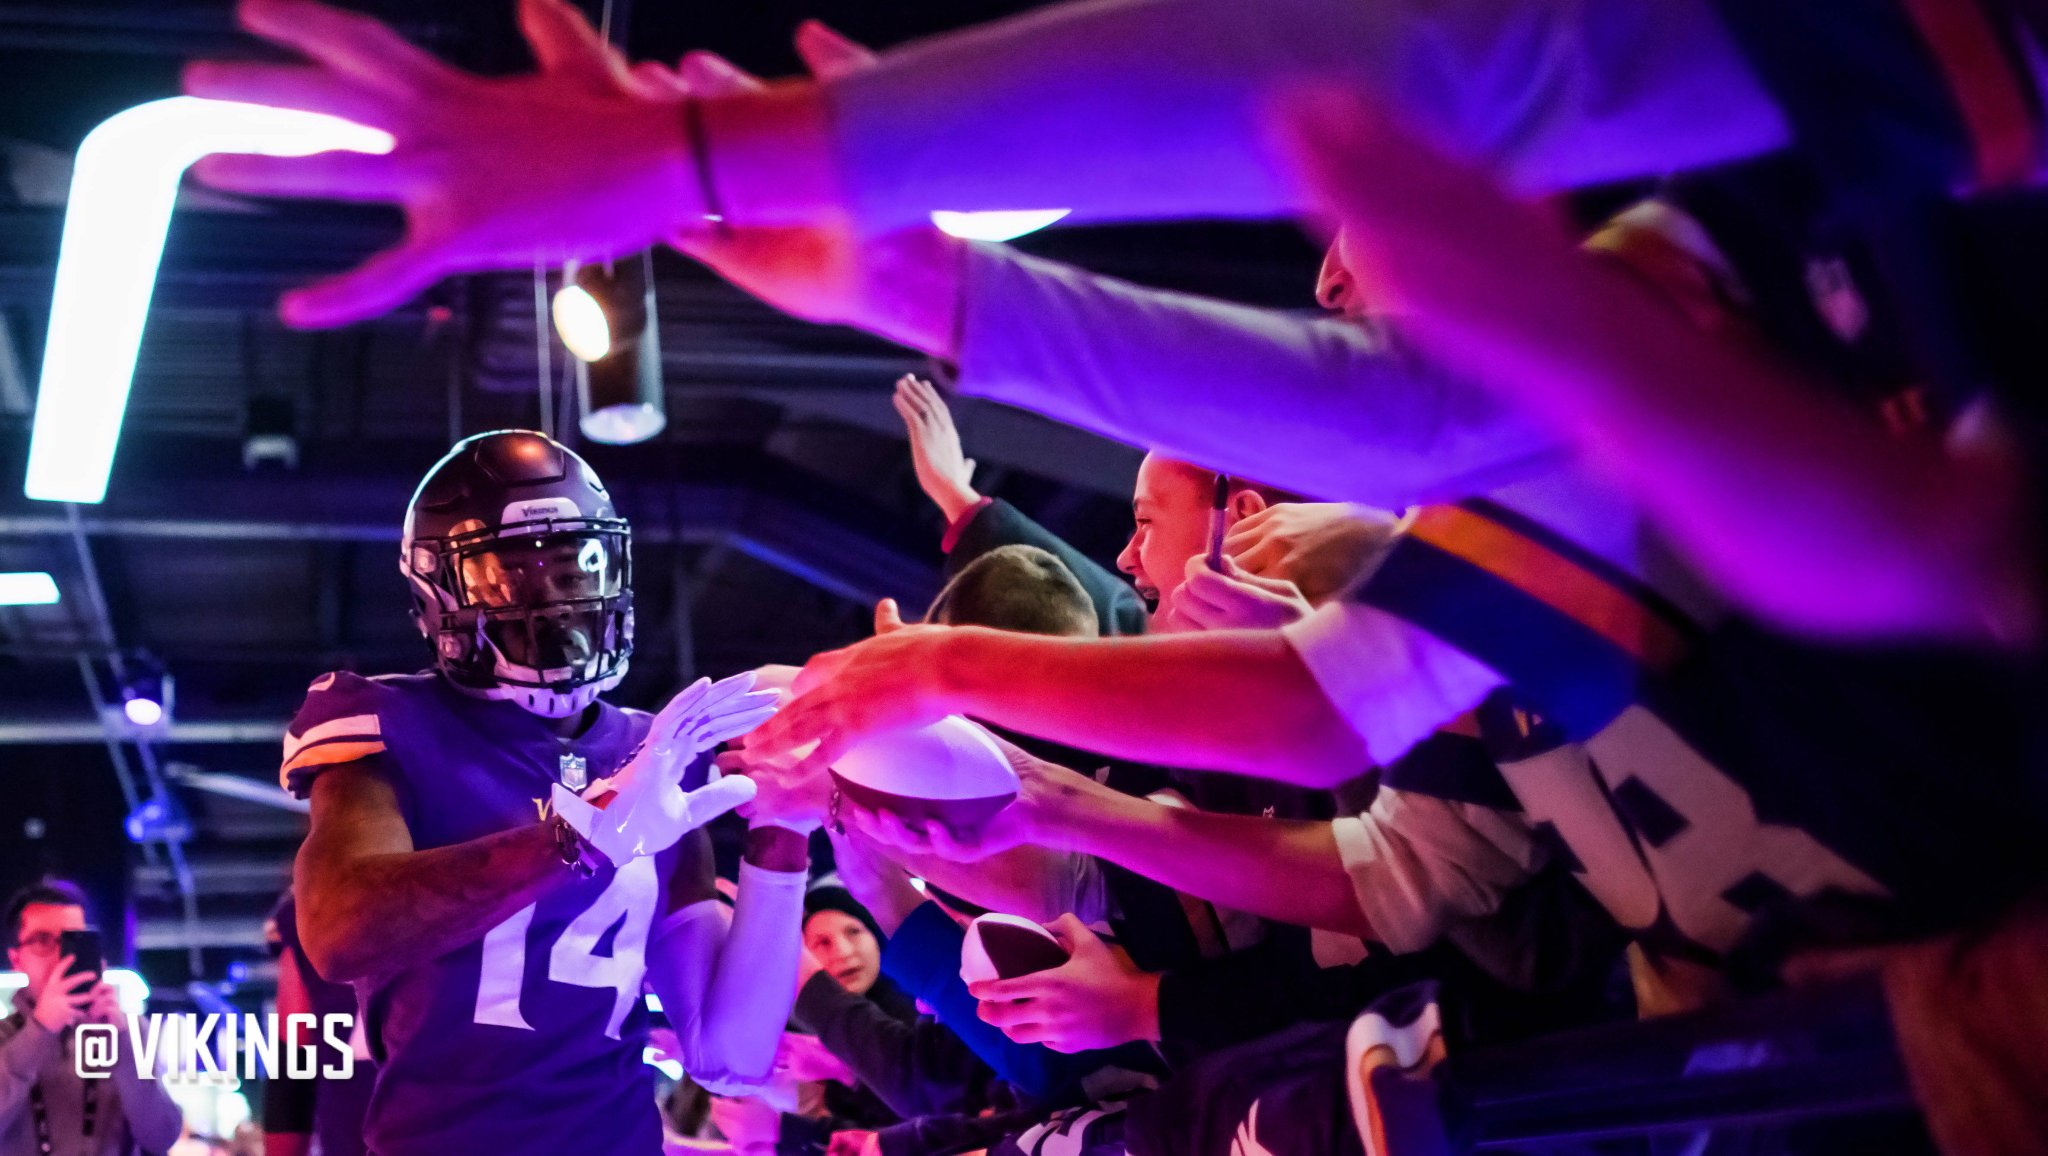 Missing these Sundays. #Skol https://t.co/rlBAxLVSLL